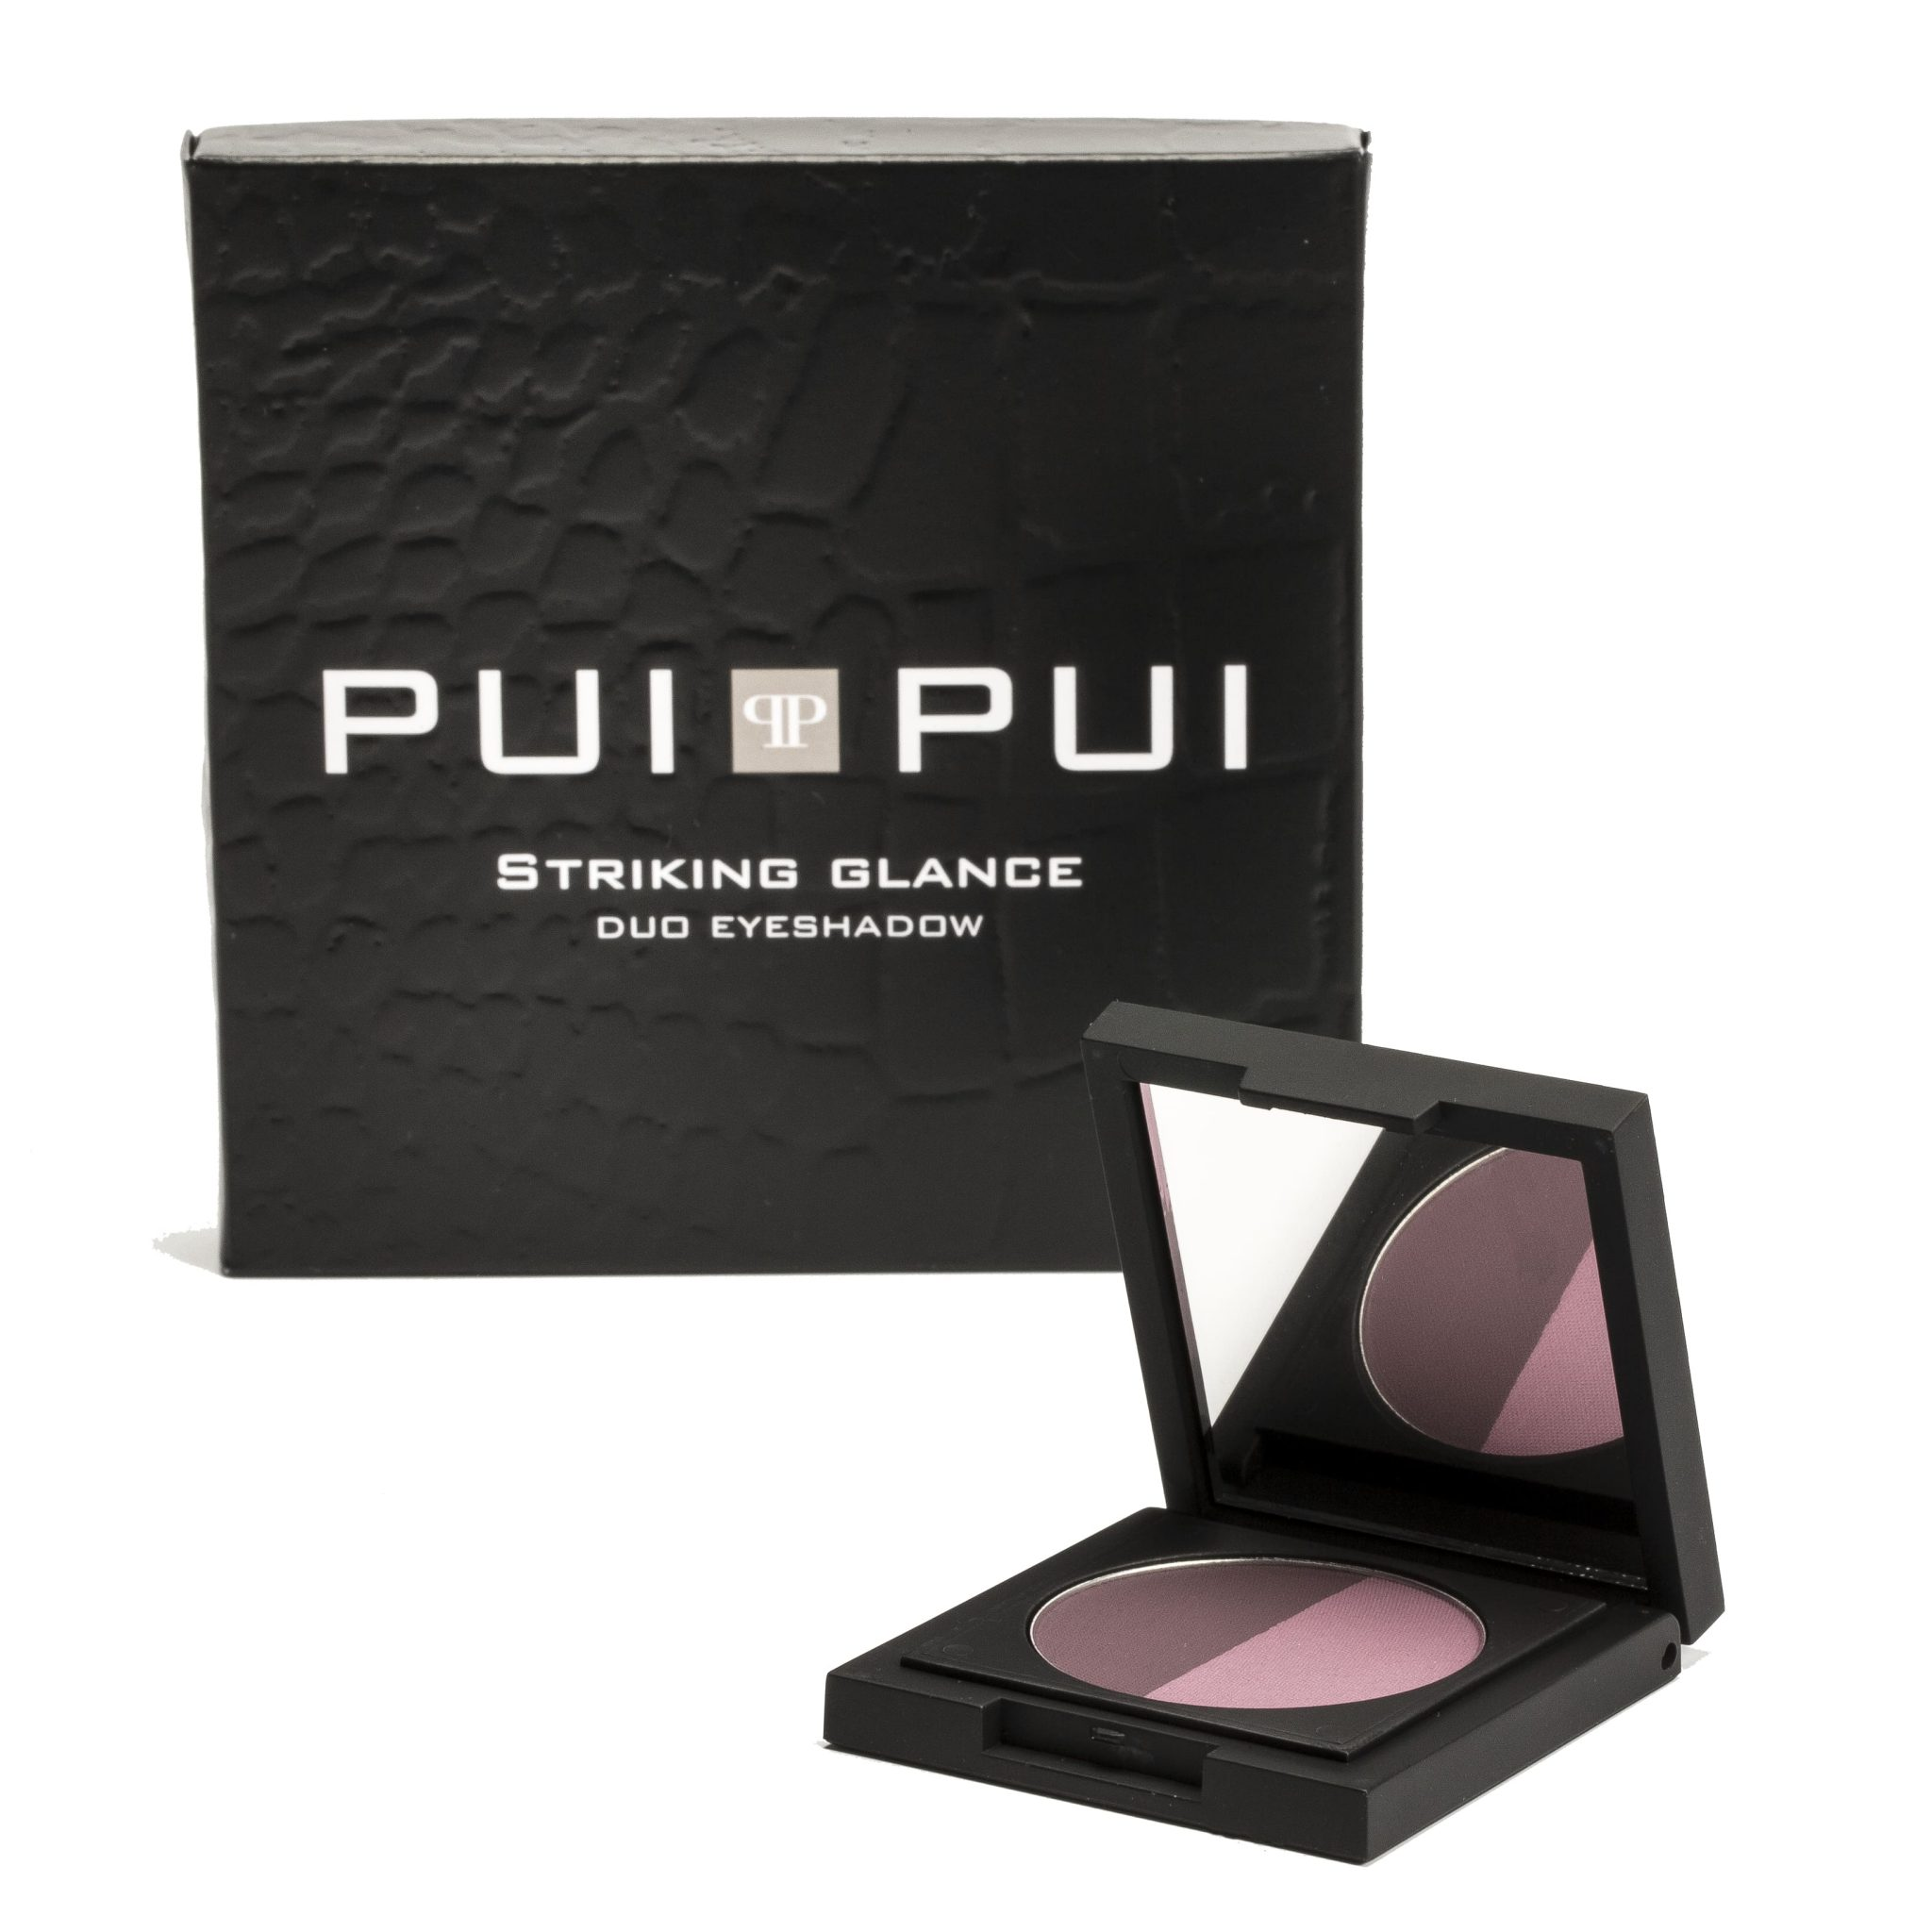 26206 striking glance duo eyeshadow - vrij